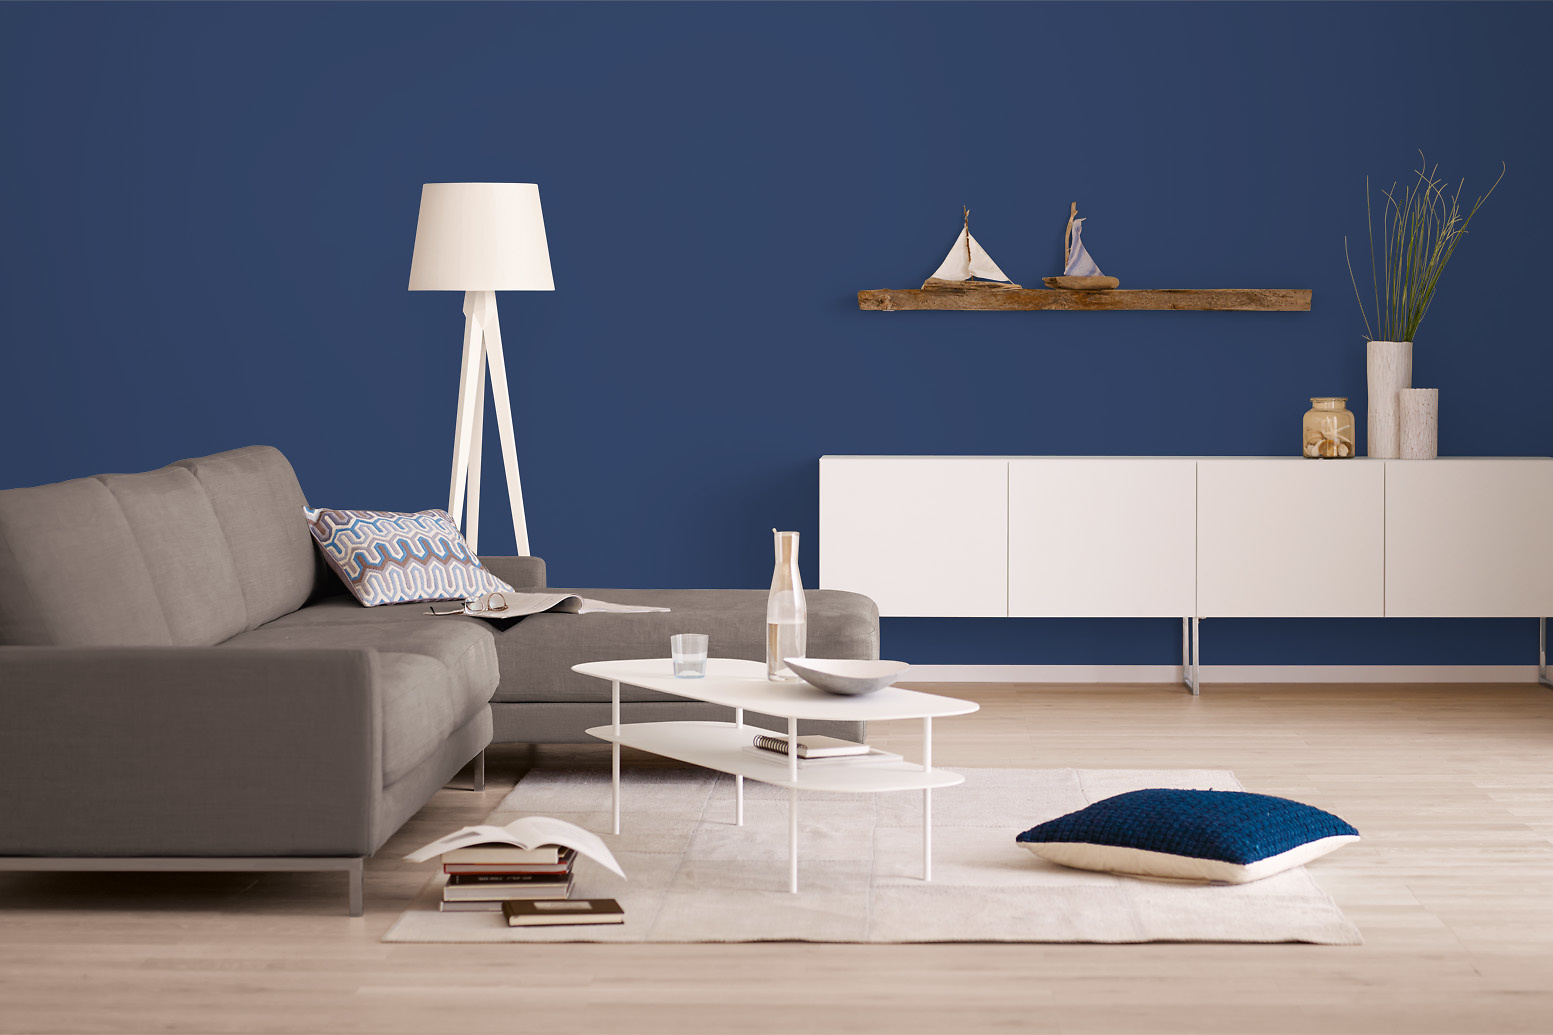 innenfarbe in blau dunkelblau streichen alpina. Black Bedroom Furniture Sets. Home Design Ideas